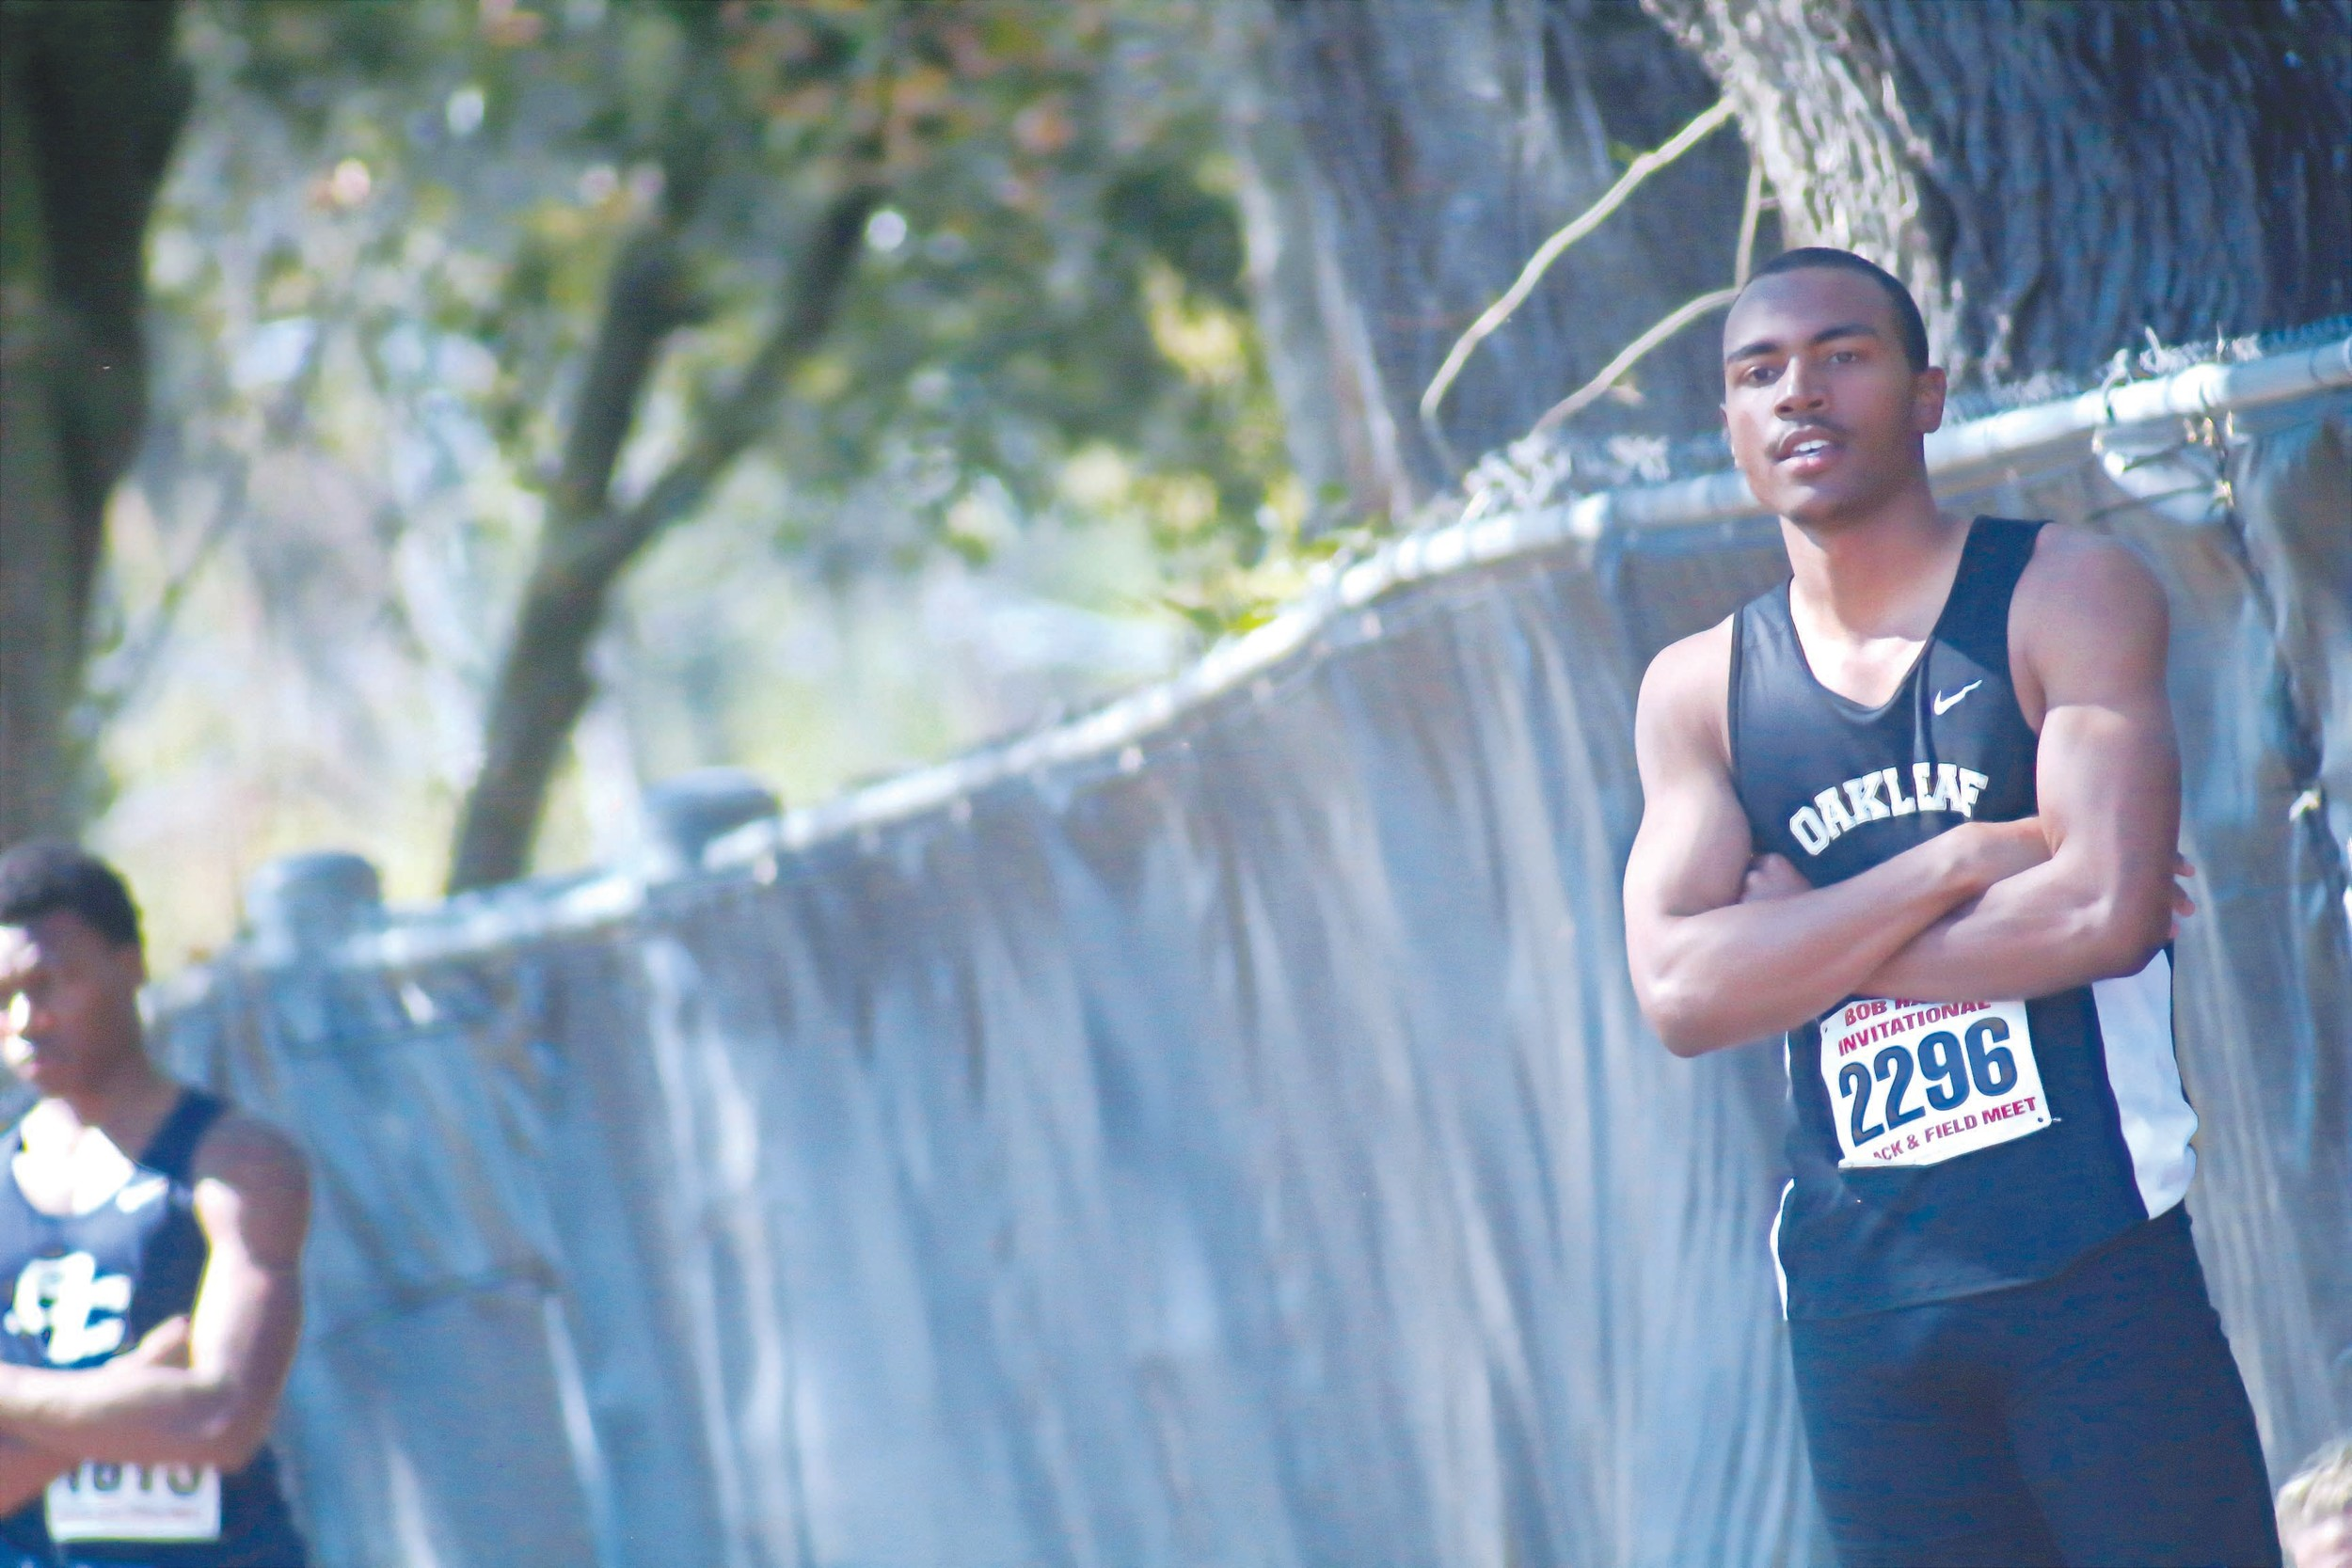 Oakleaf High junior triple jumper Melvin Briley stayed steady all season with consistently improving jump distances and withstood terrible track weather to win state gold.